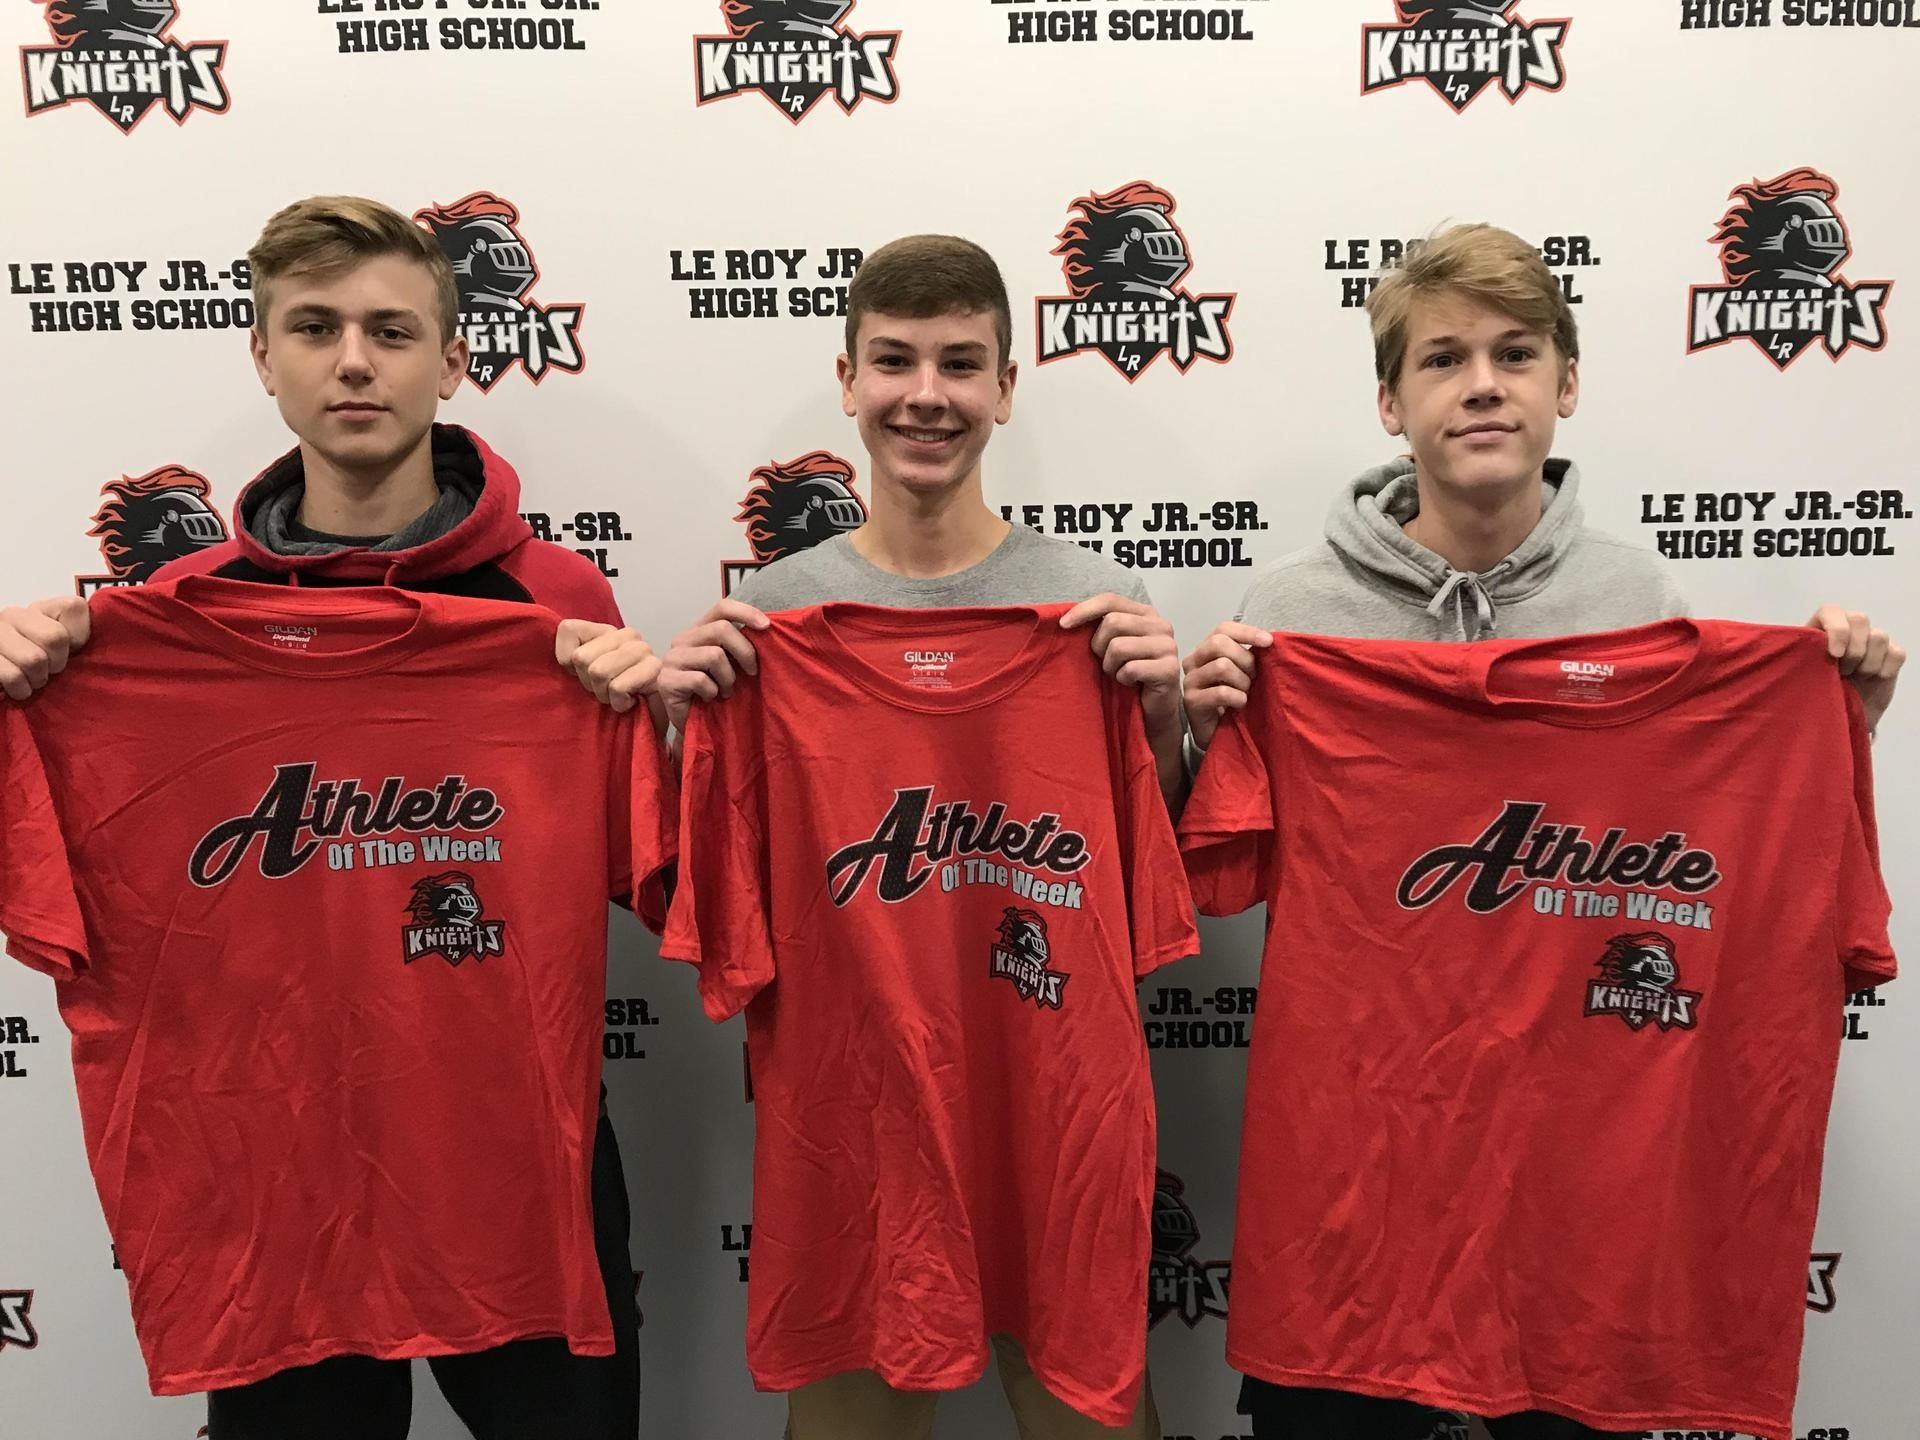 Athletes of the Week - C Lytle, A Loftus, E Smith